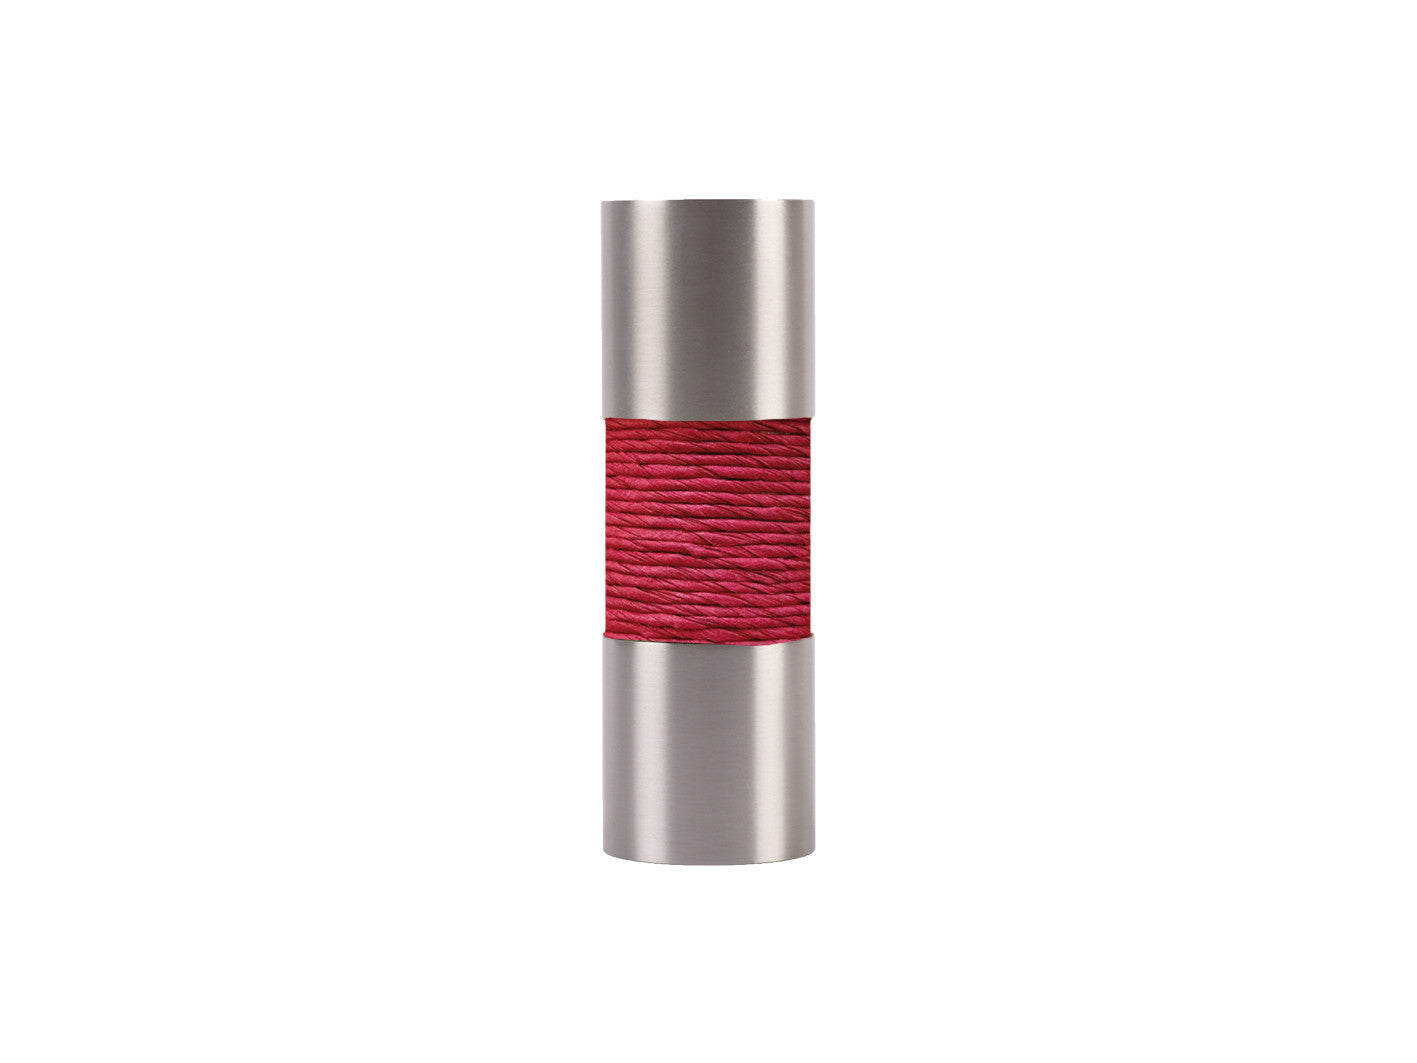 Stainless Steel Barrel Finial, Bright Twine Colours, 19mm Curtain ...